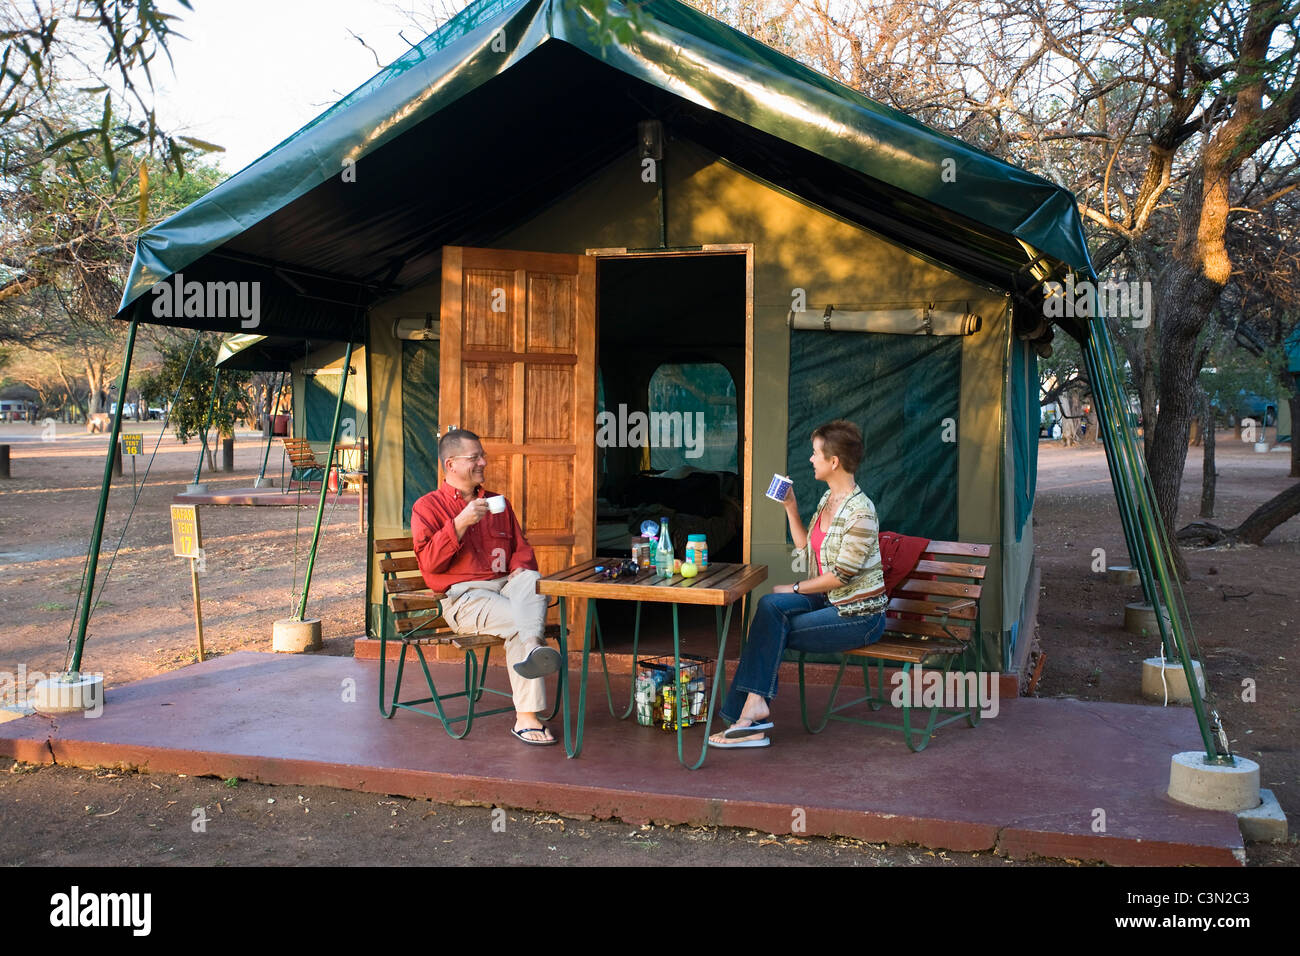 South Africa, Pilanesberg National Park Couple, man and woman, having breakfast in front of safari tent at campsite - Stock Image